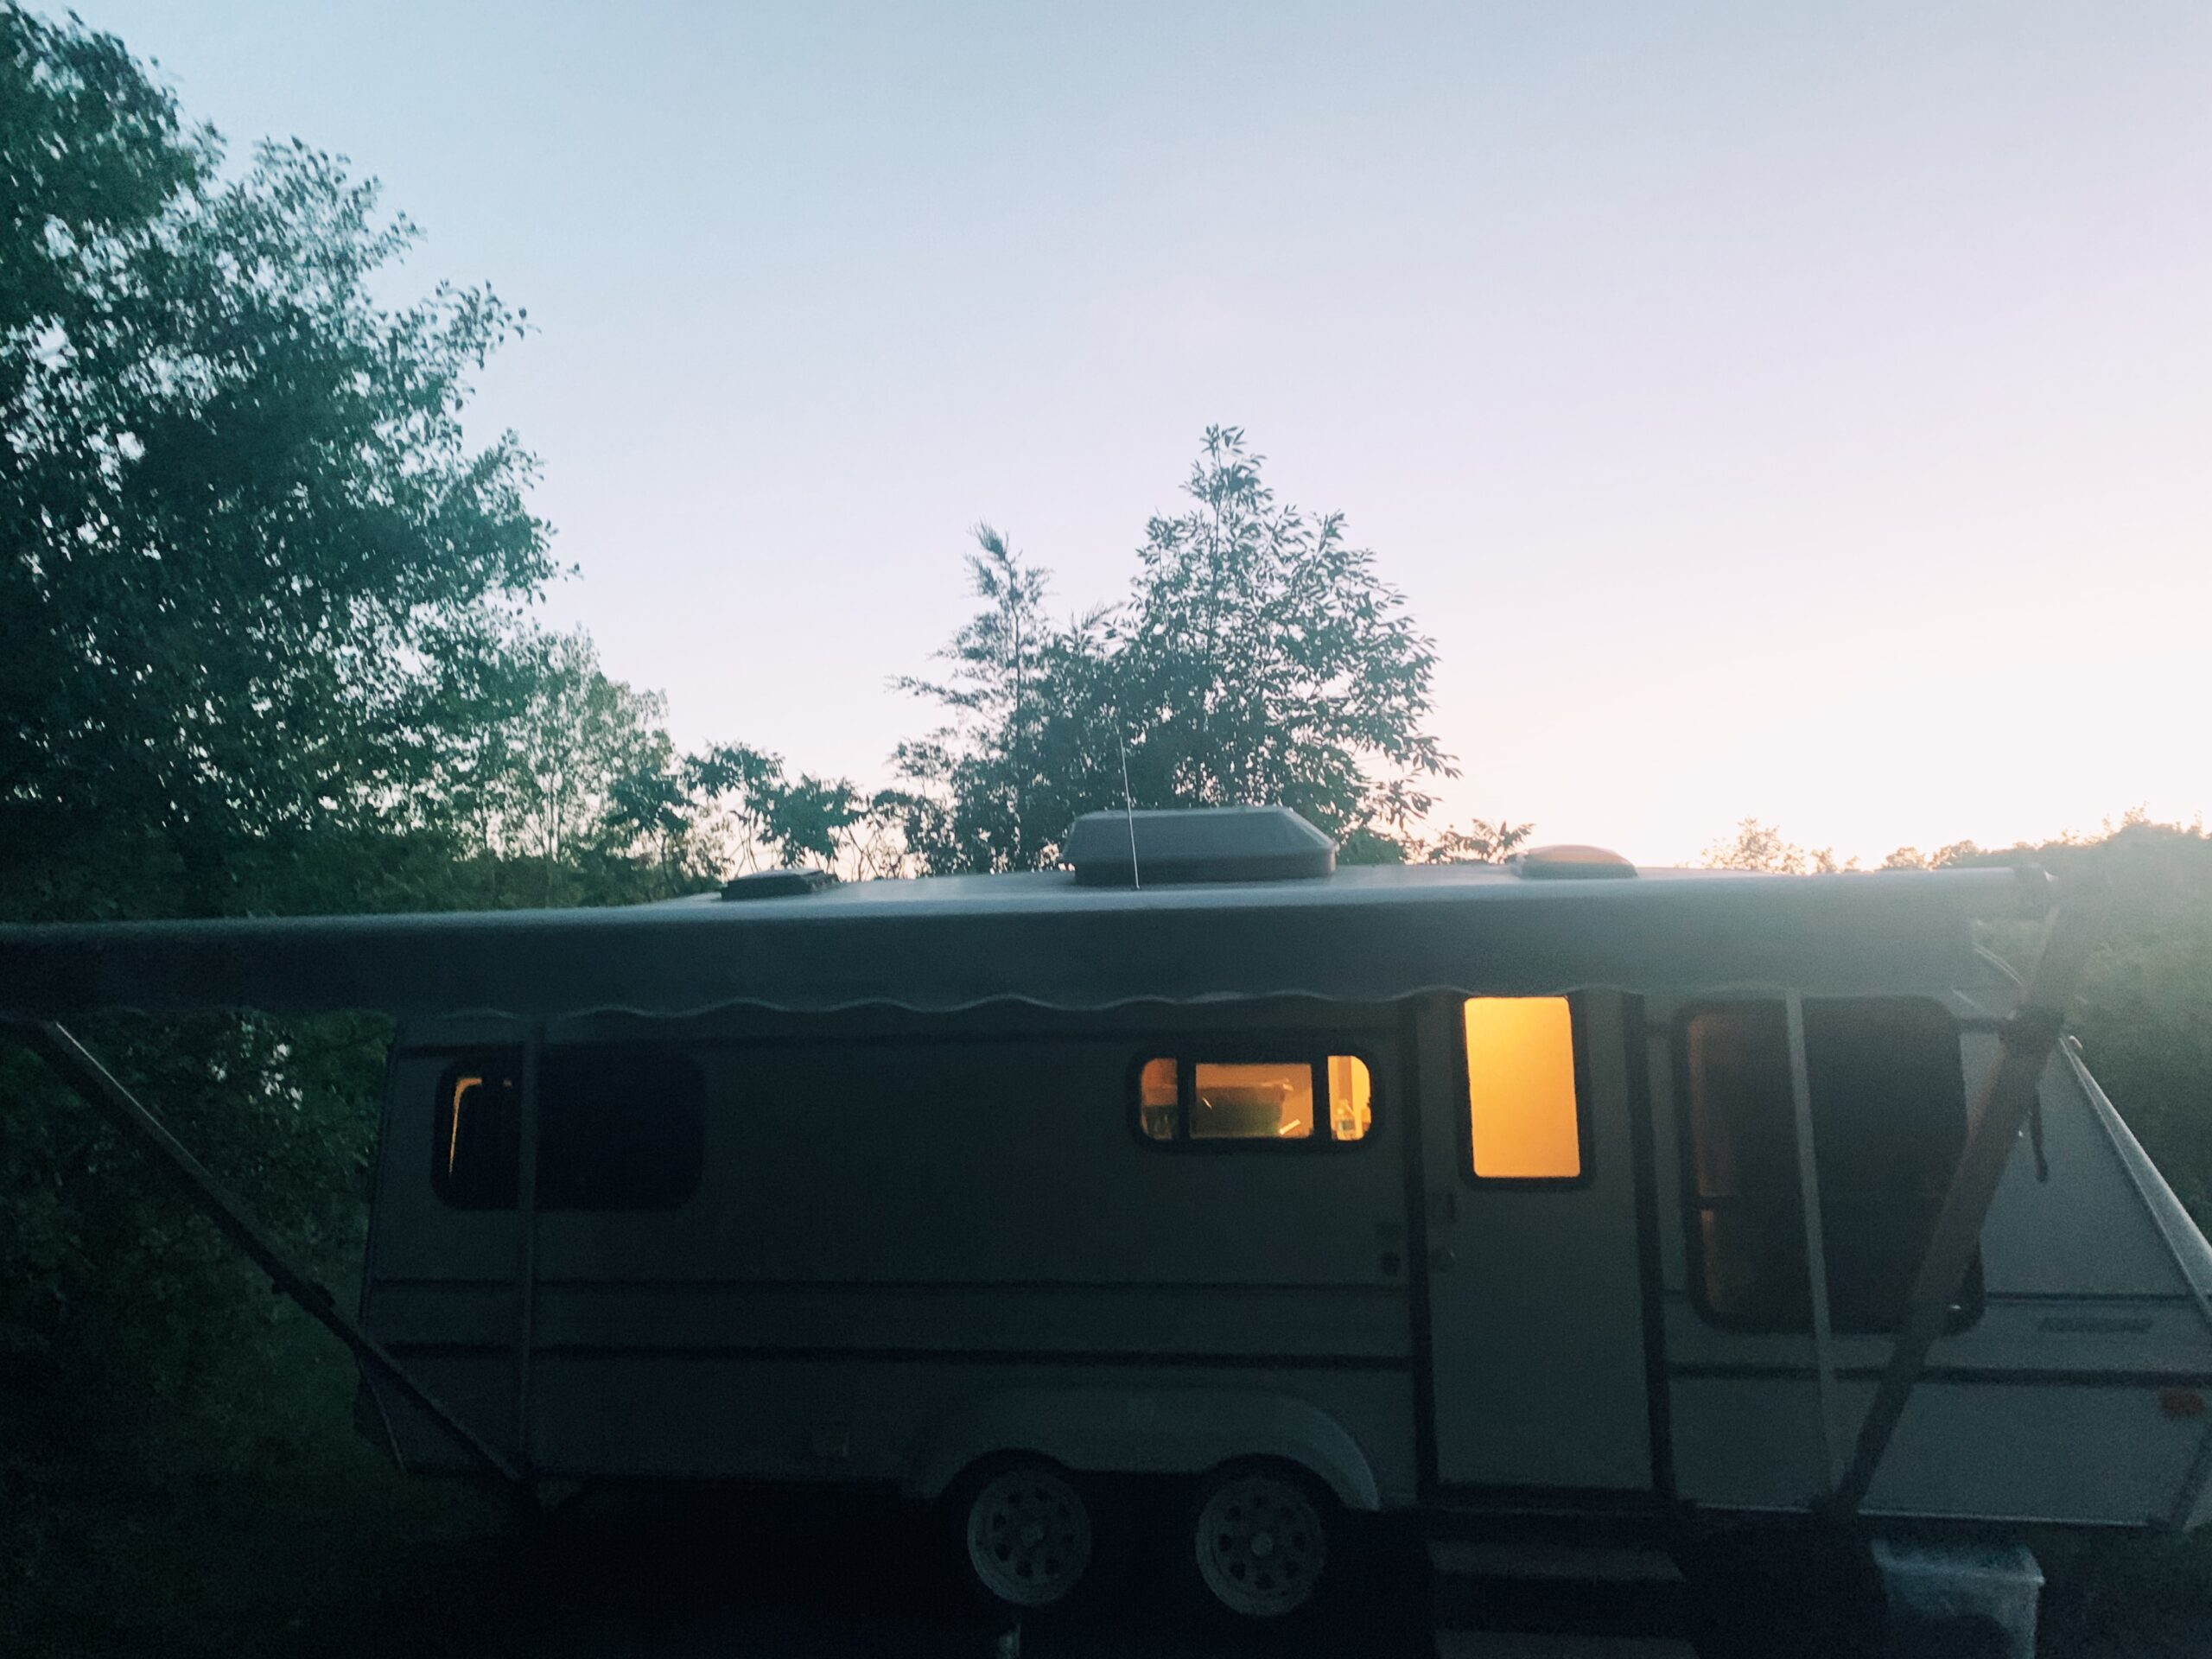 Our 1987 ABI Award Adventurer Trailer